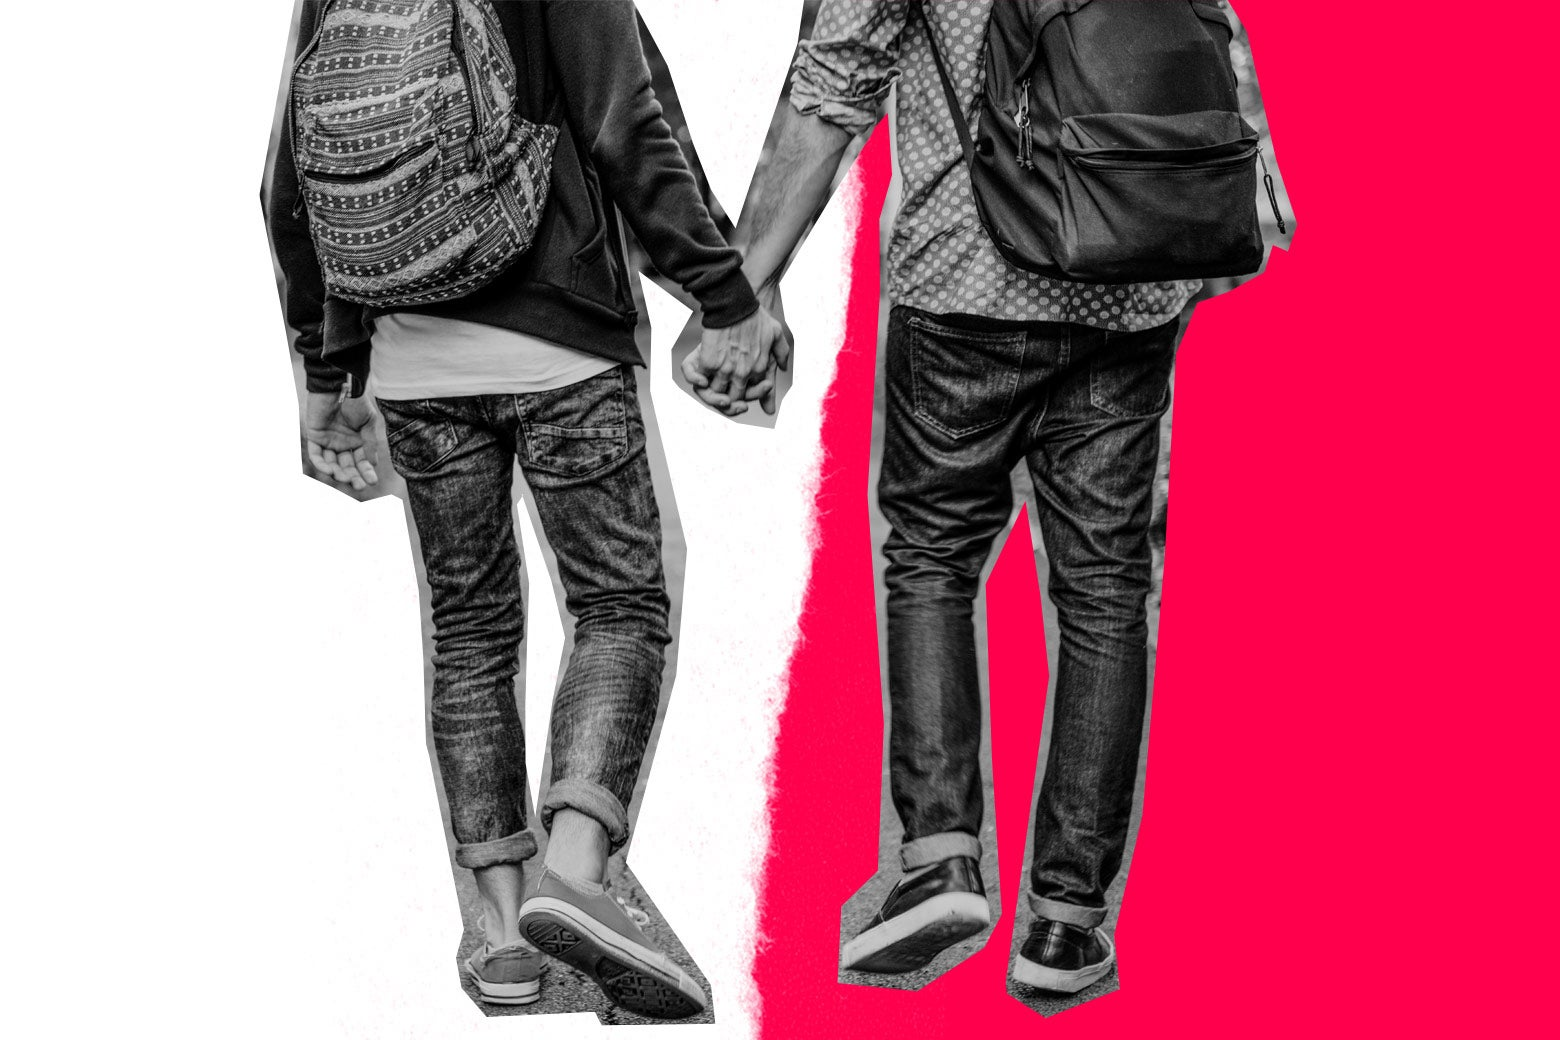 Two people wearing backpacks hold hands.